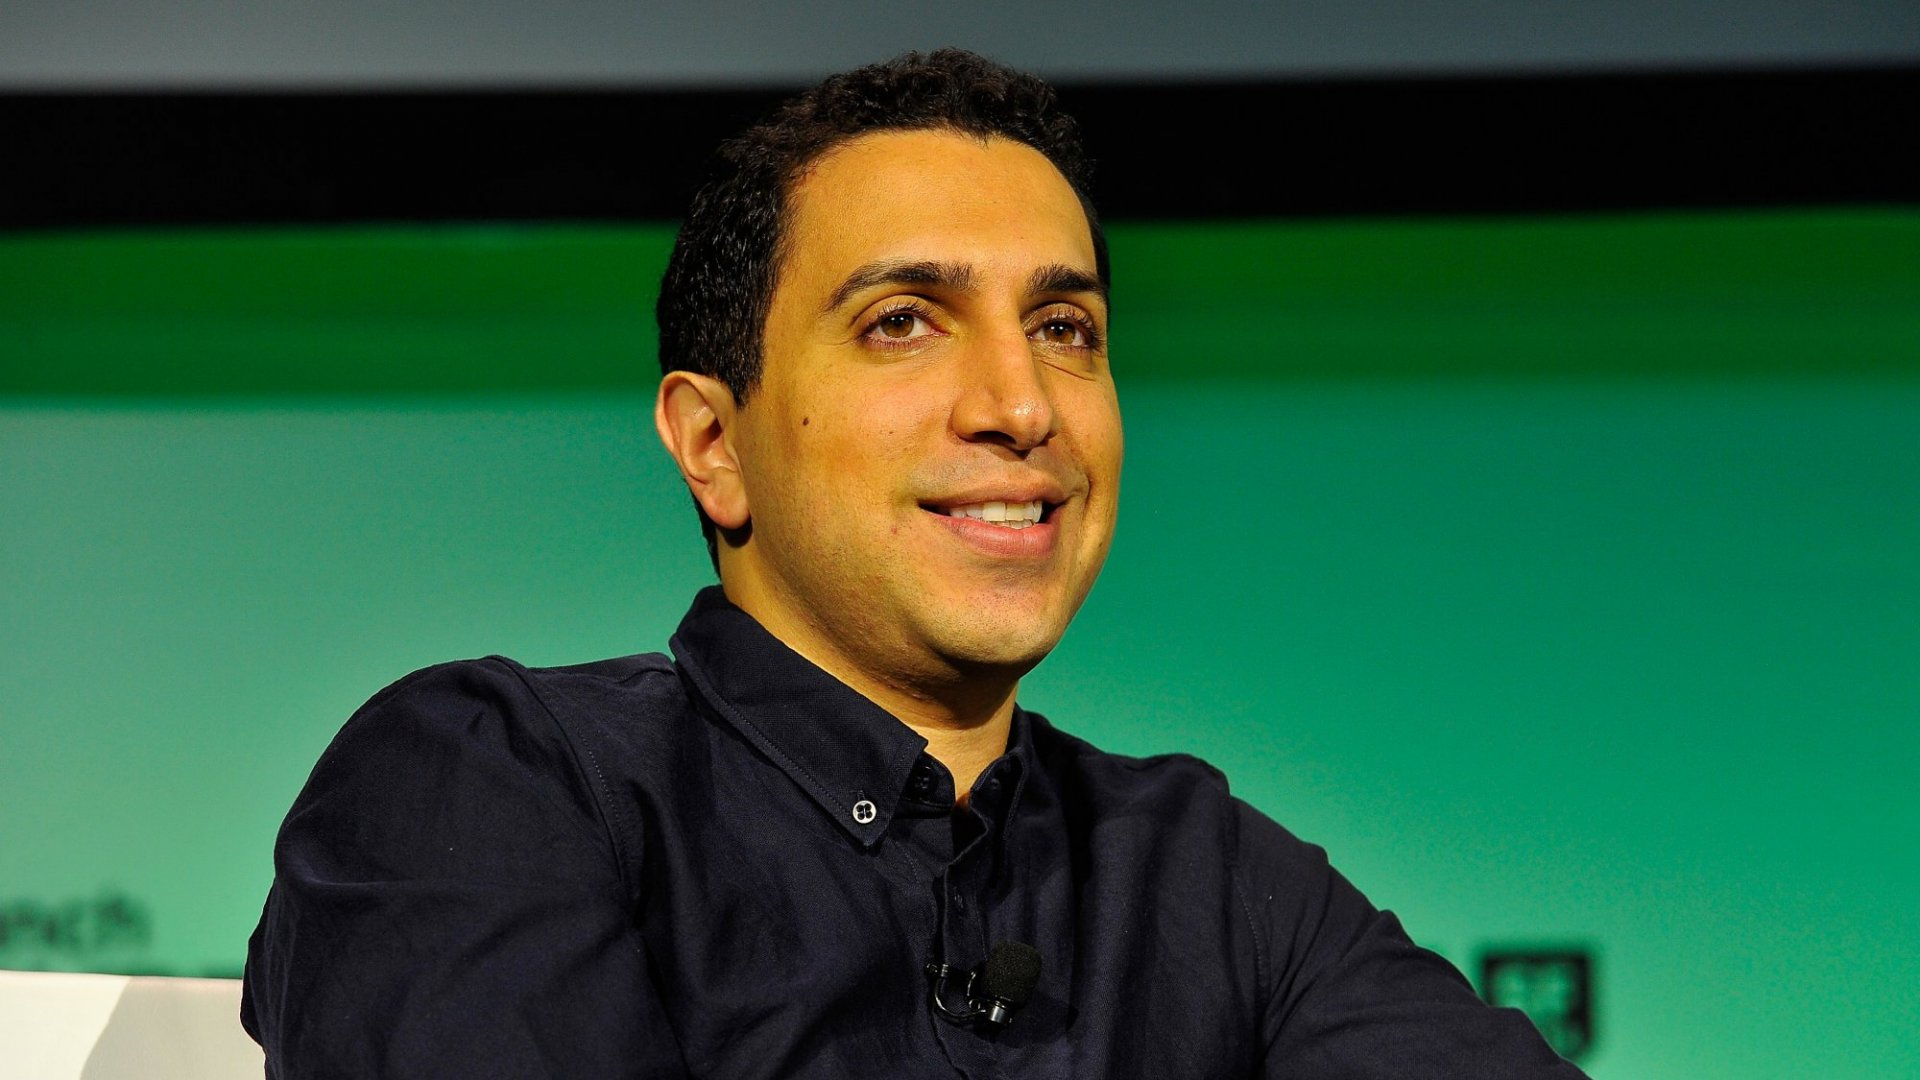 Tinder Will Charge Users Extra for Being Old